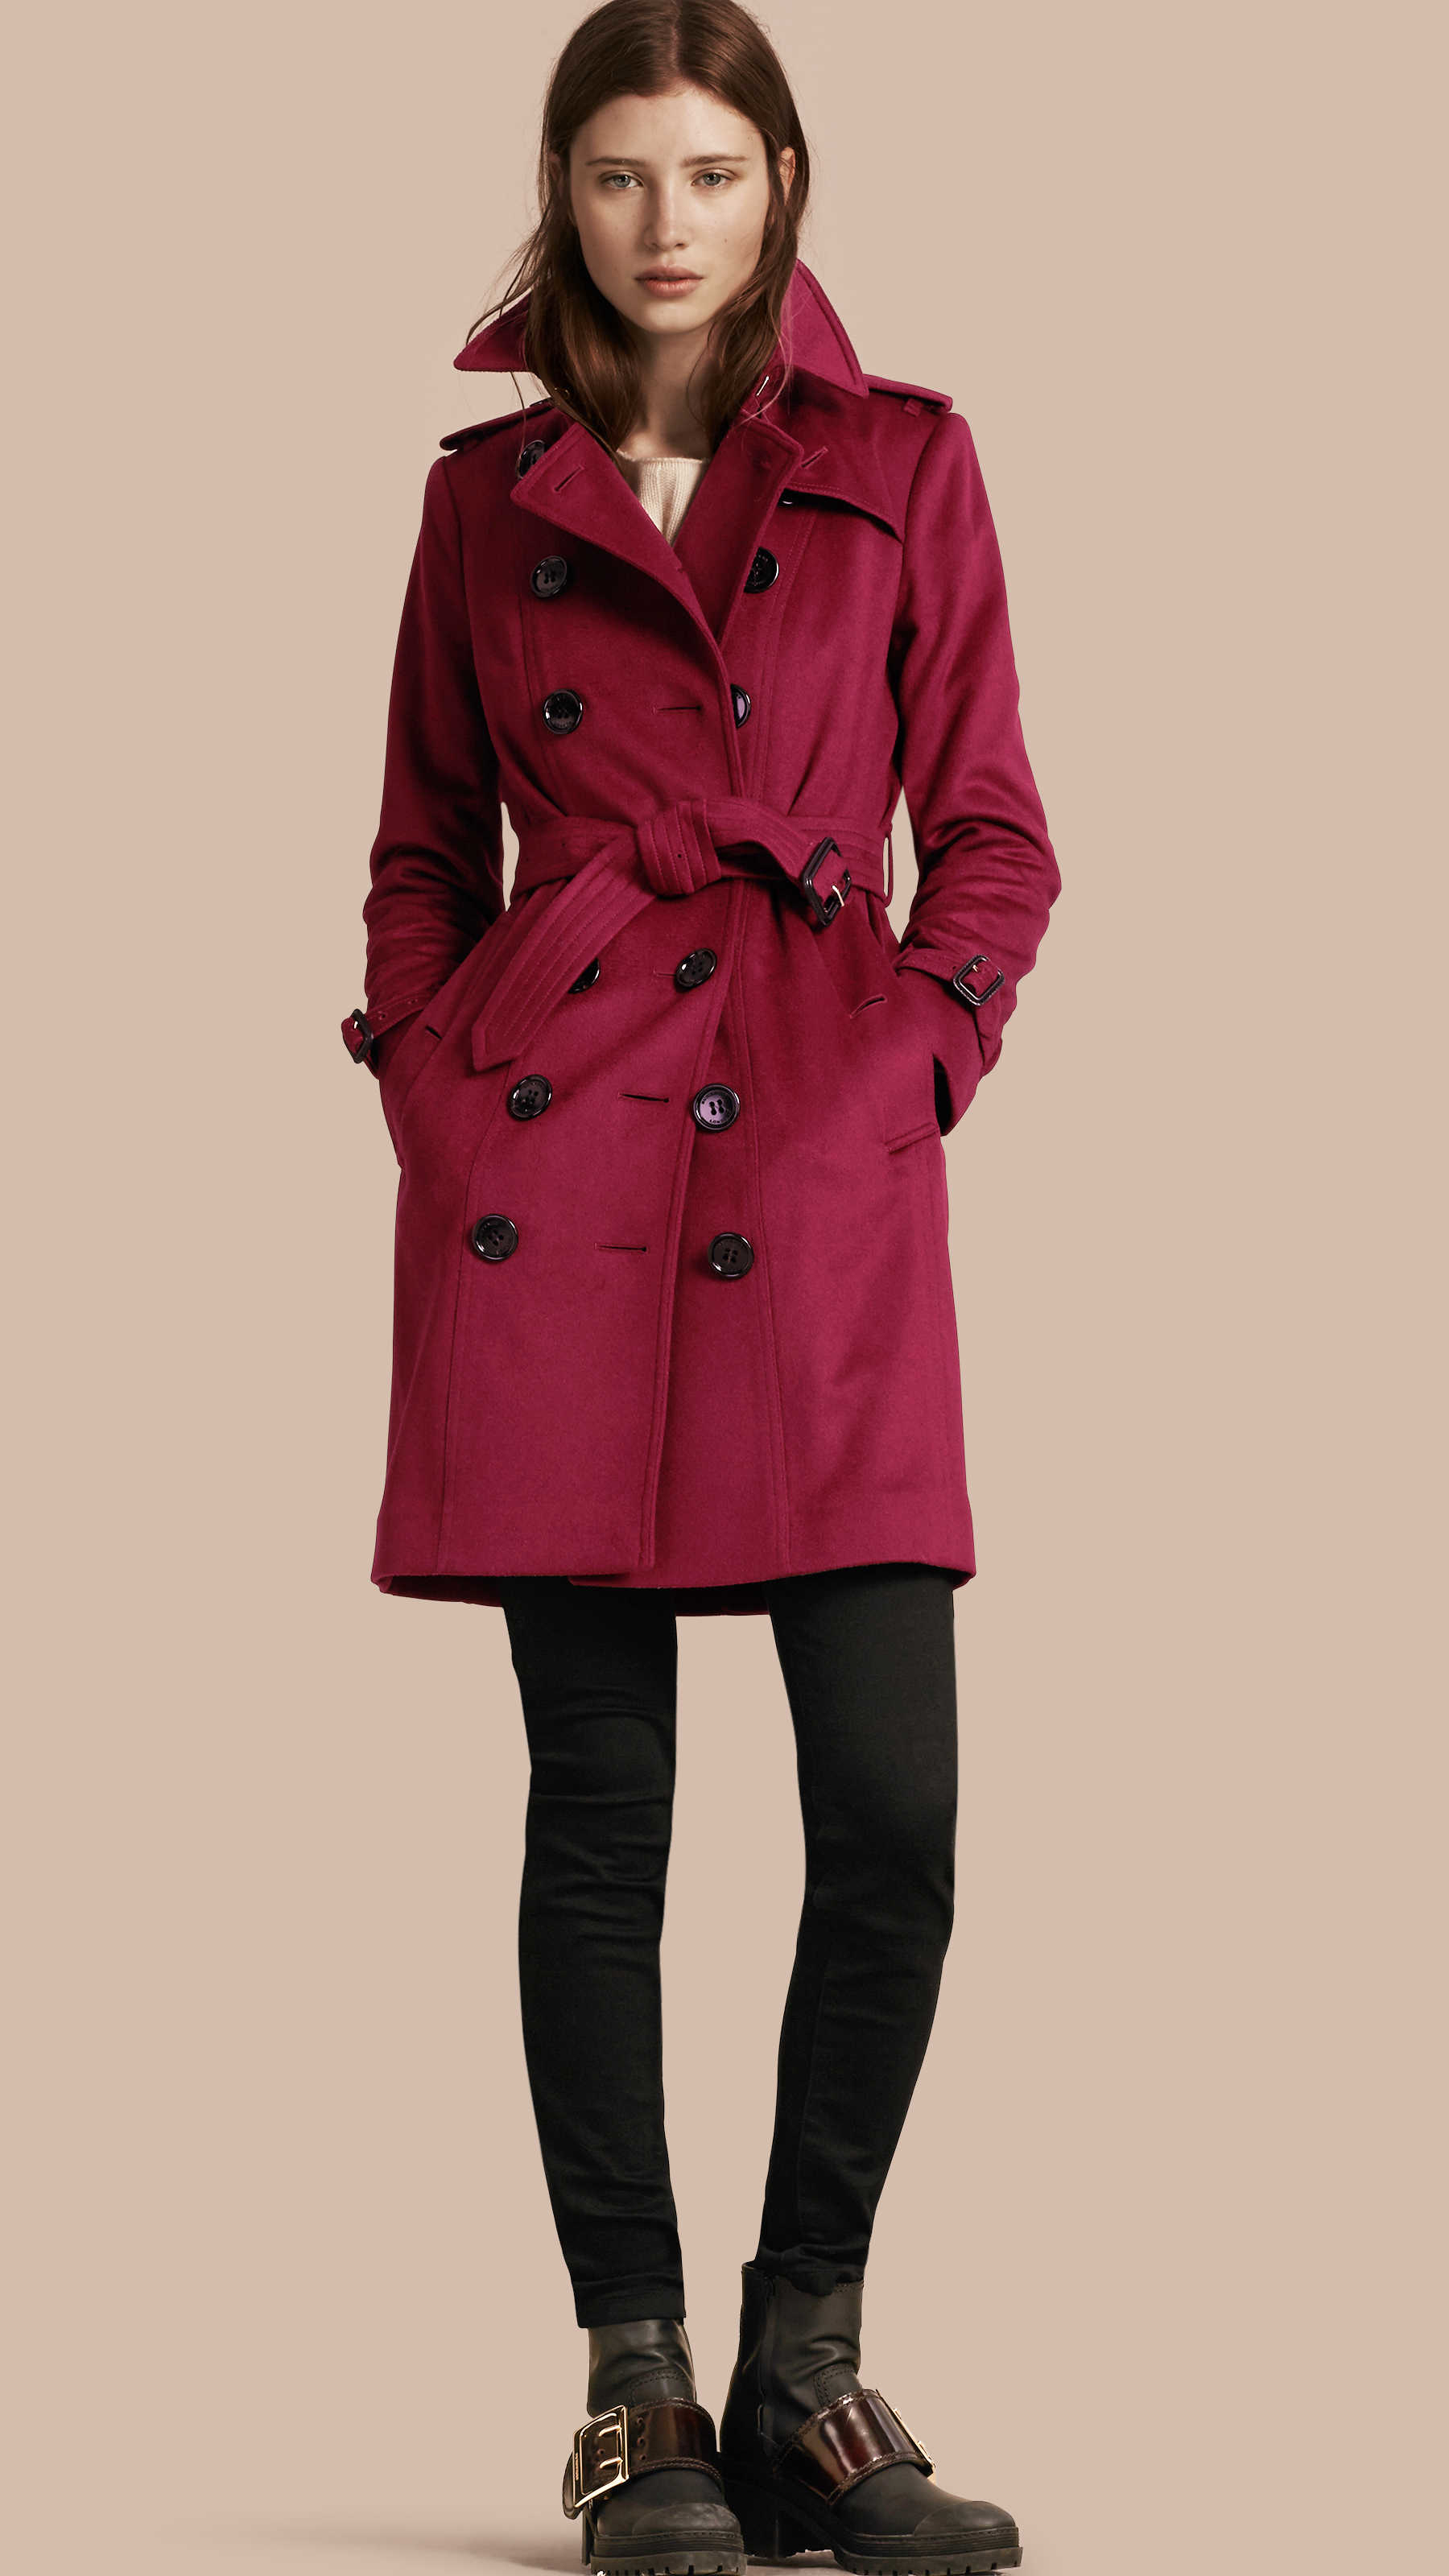 Burberry Sandringham Fit Cashmere Trench Coat Cherry Pink in Red ...